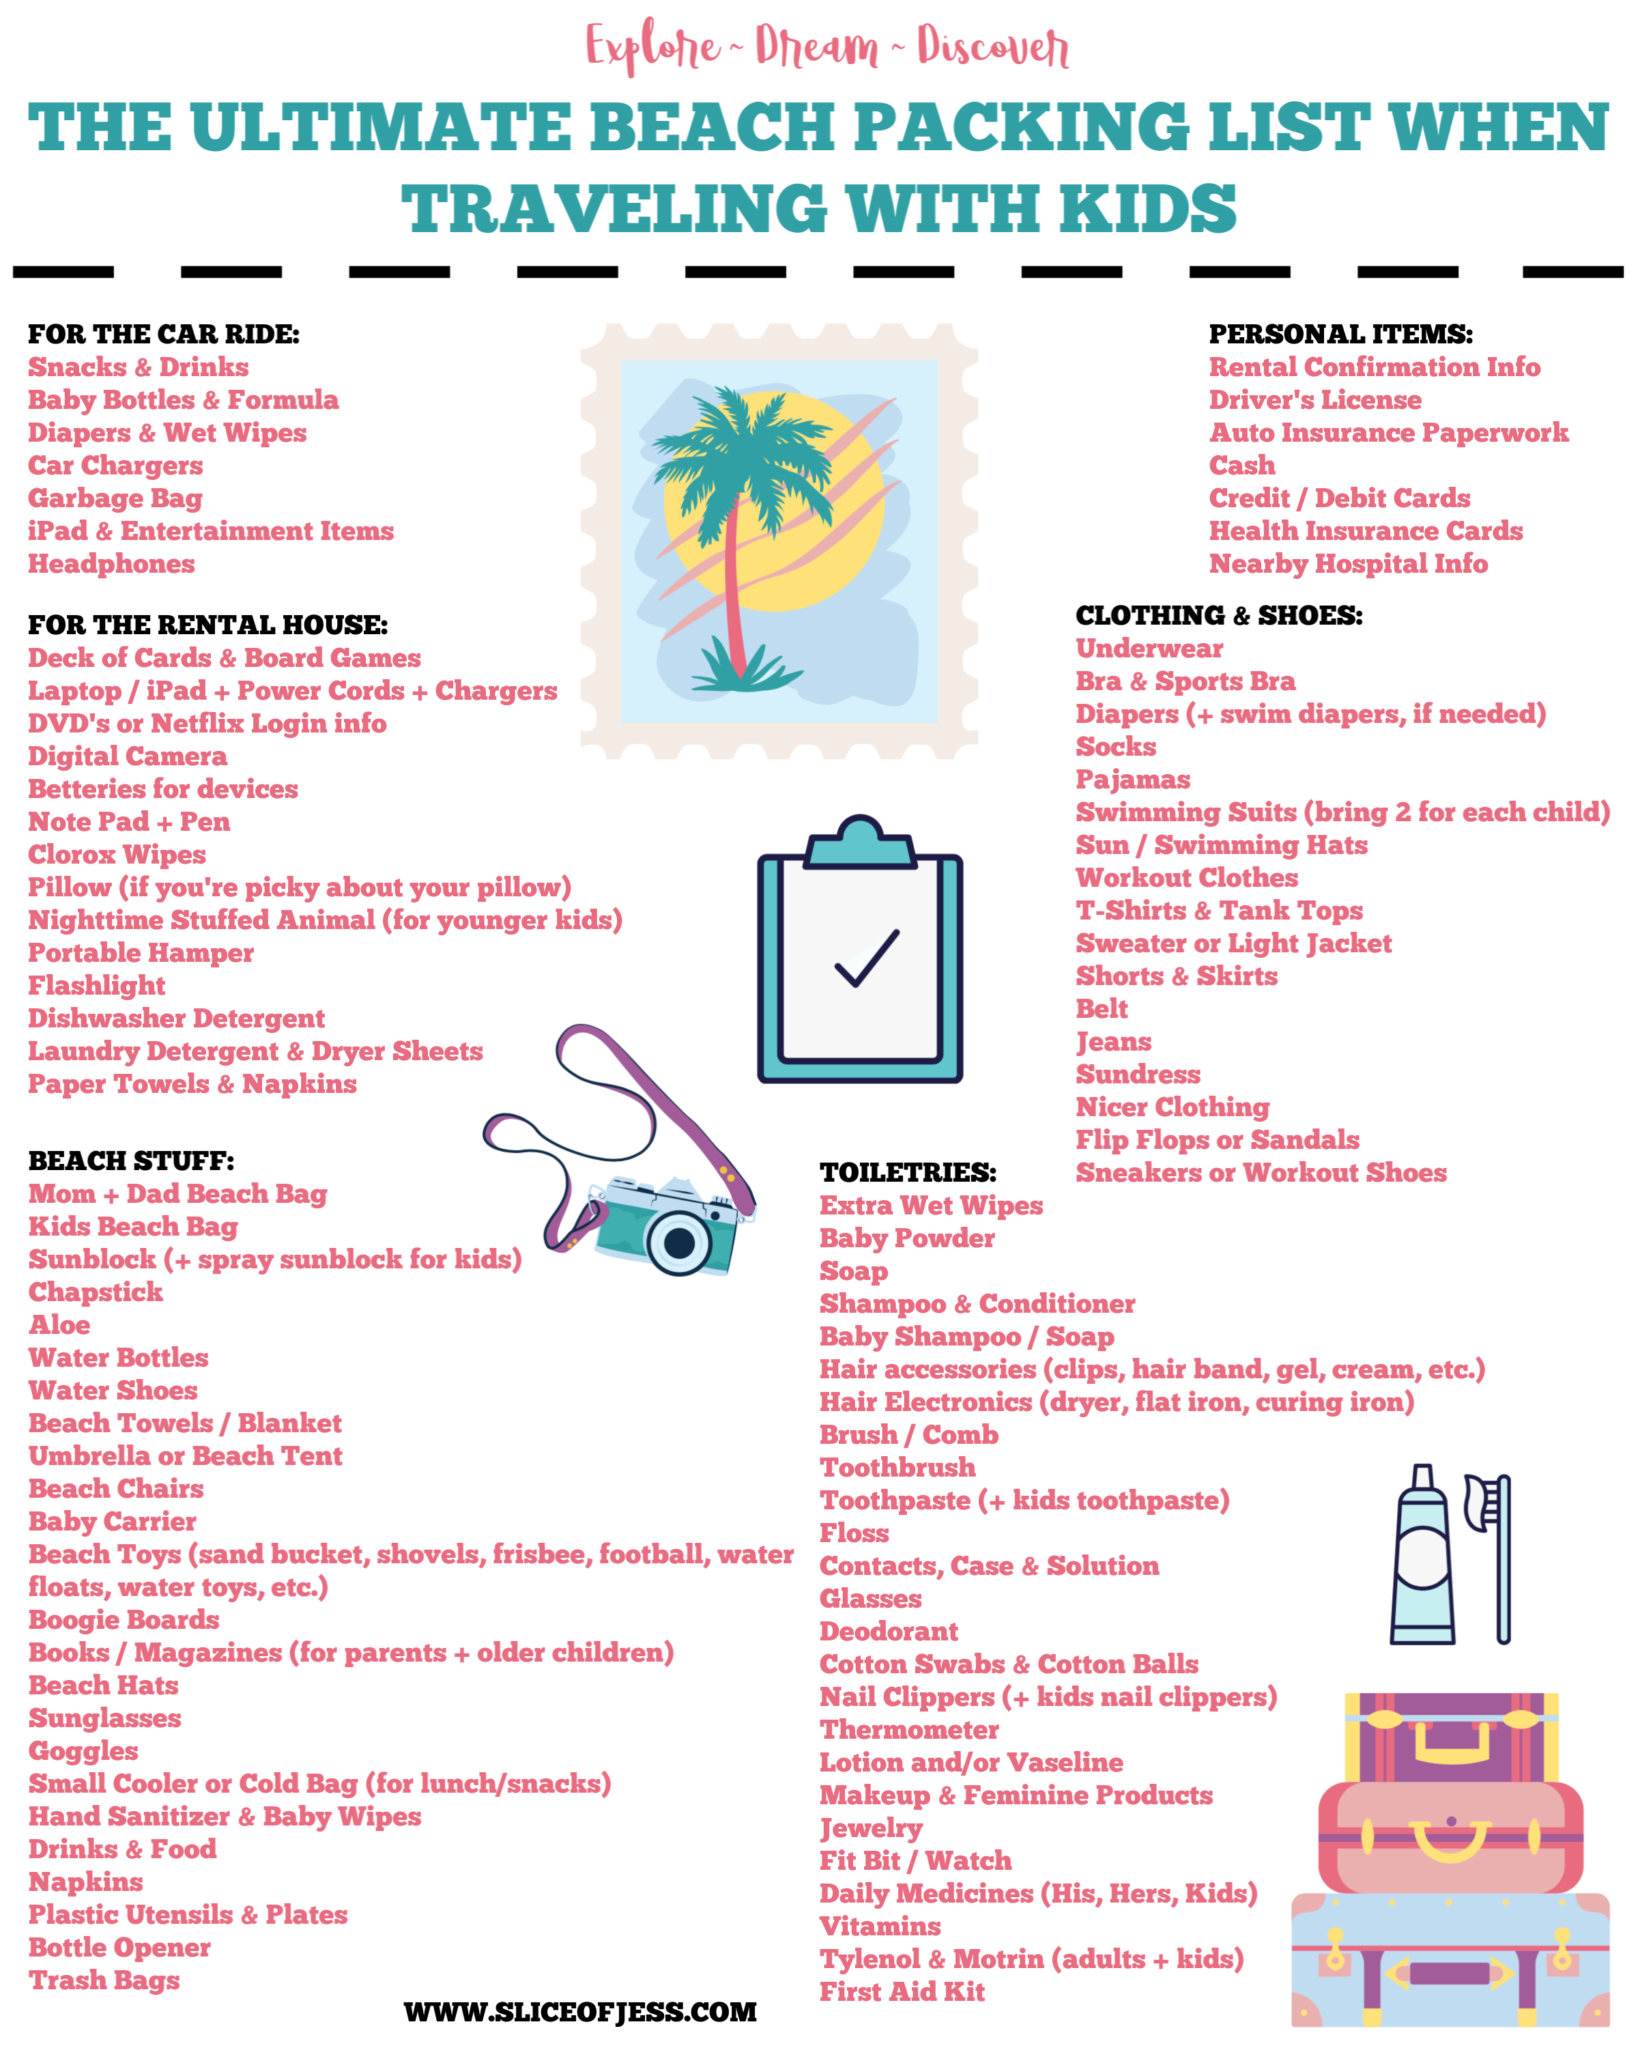 the ultimate beach packing list when traveling with kids